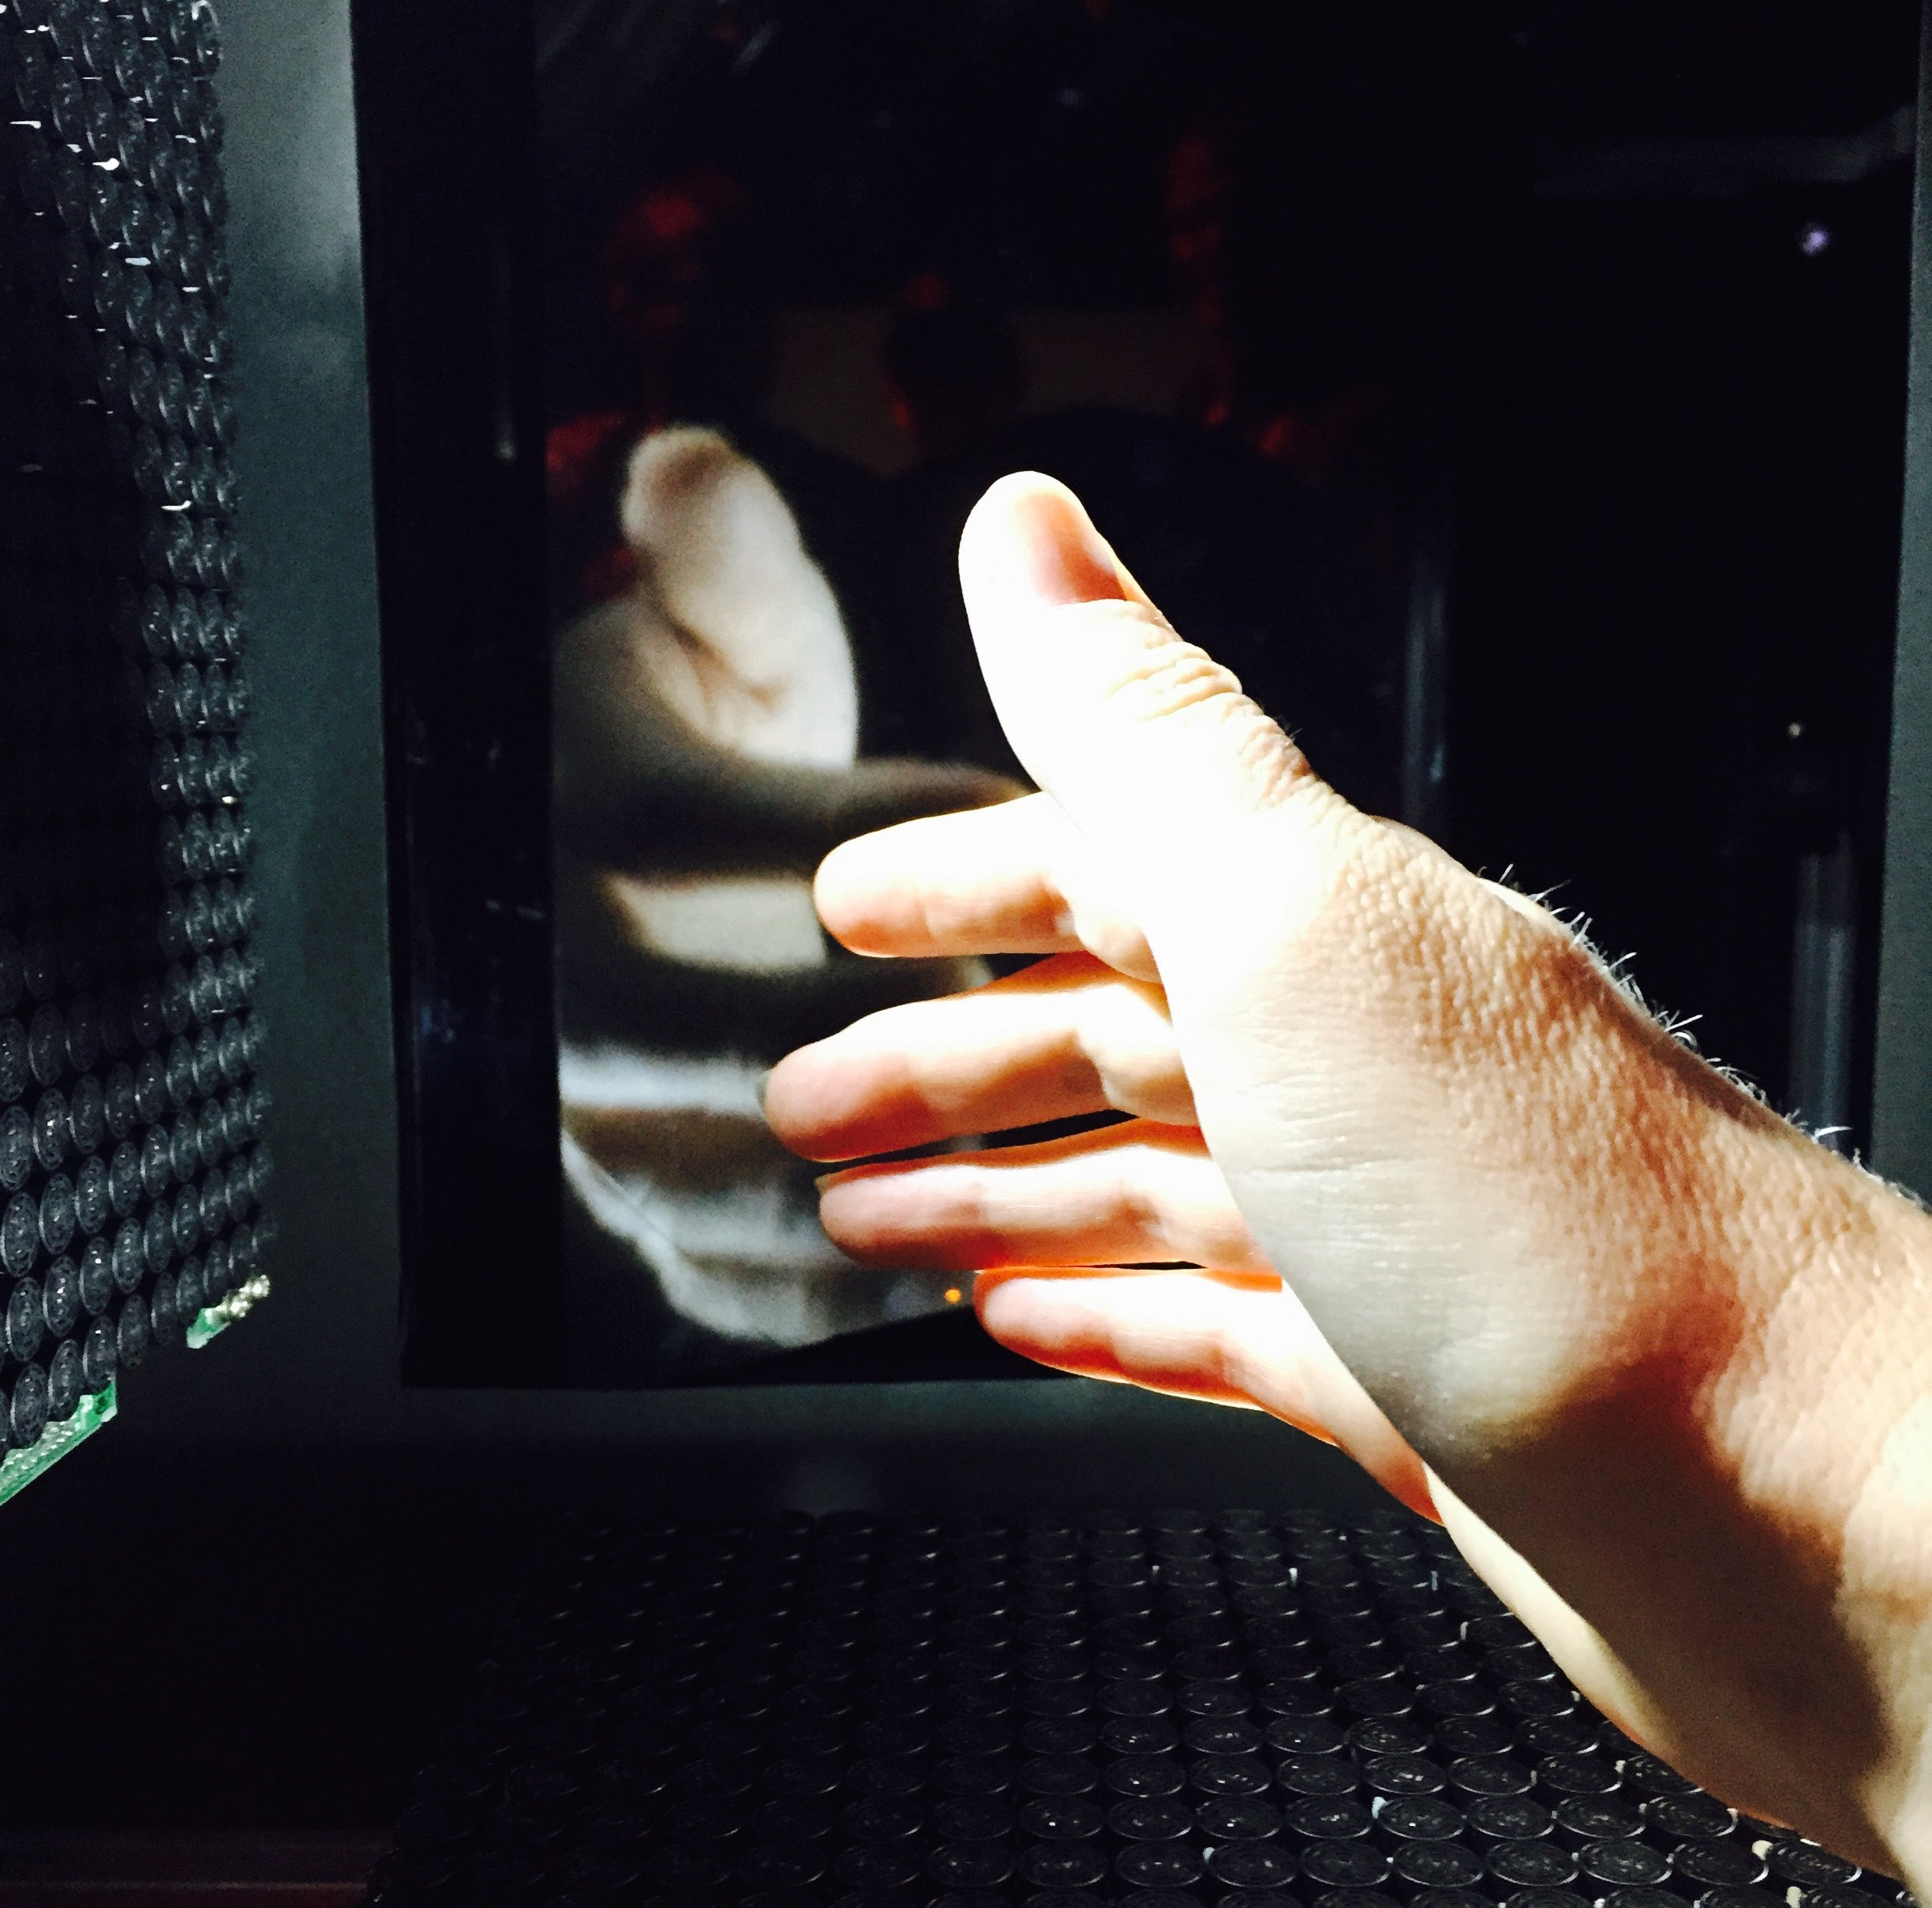 The Haptic Tech That Could Let You Touch The Person You're Skyping With